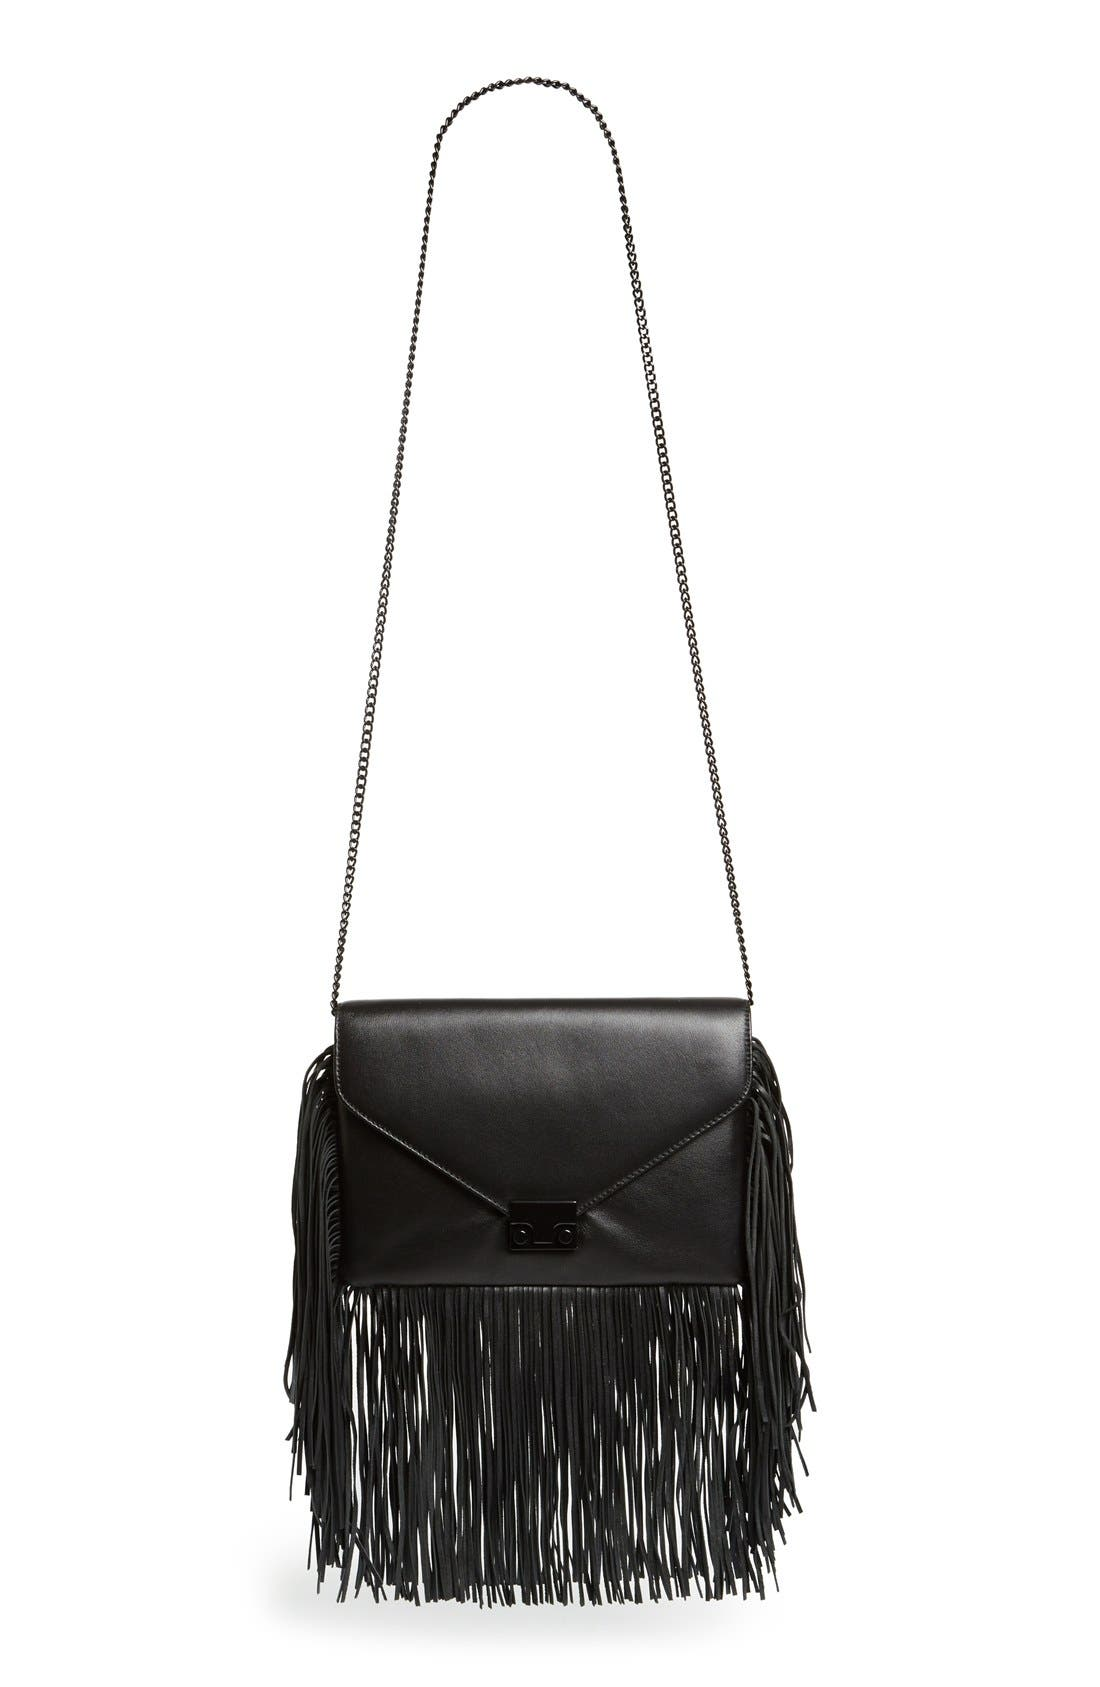 'Lock' Fringe Clutch,                             Main thumbnail 1, color,                             001